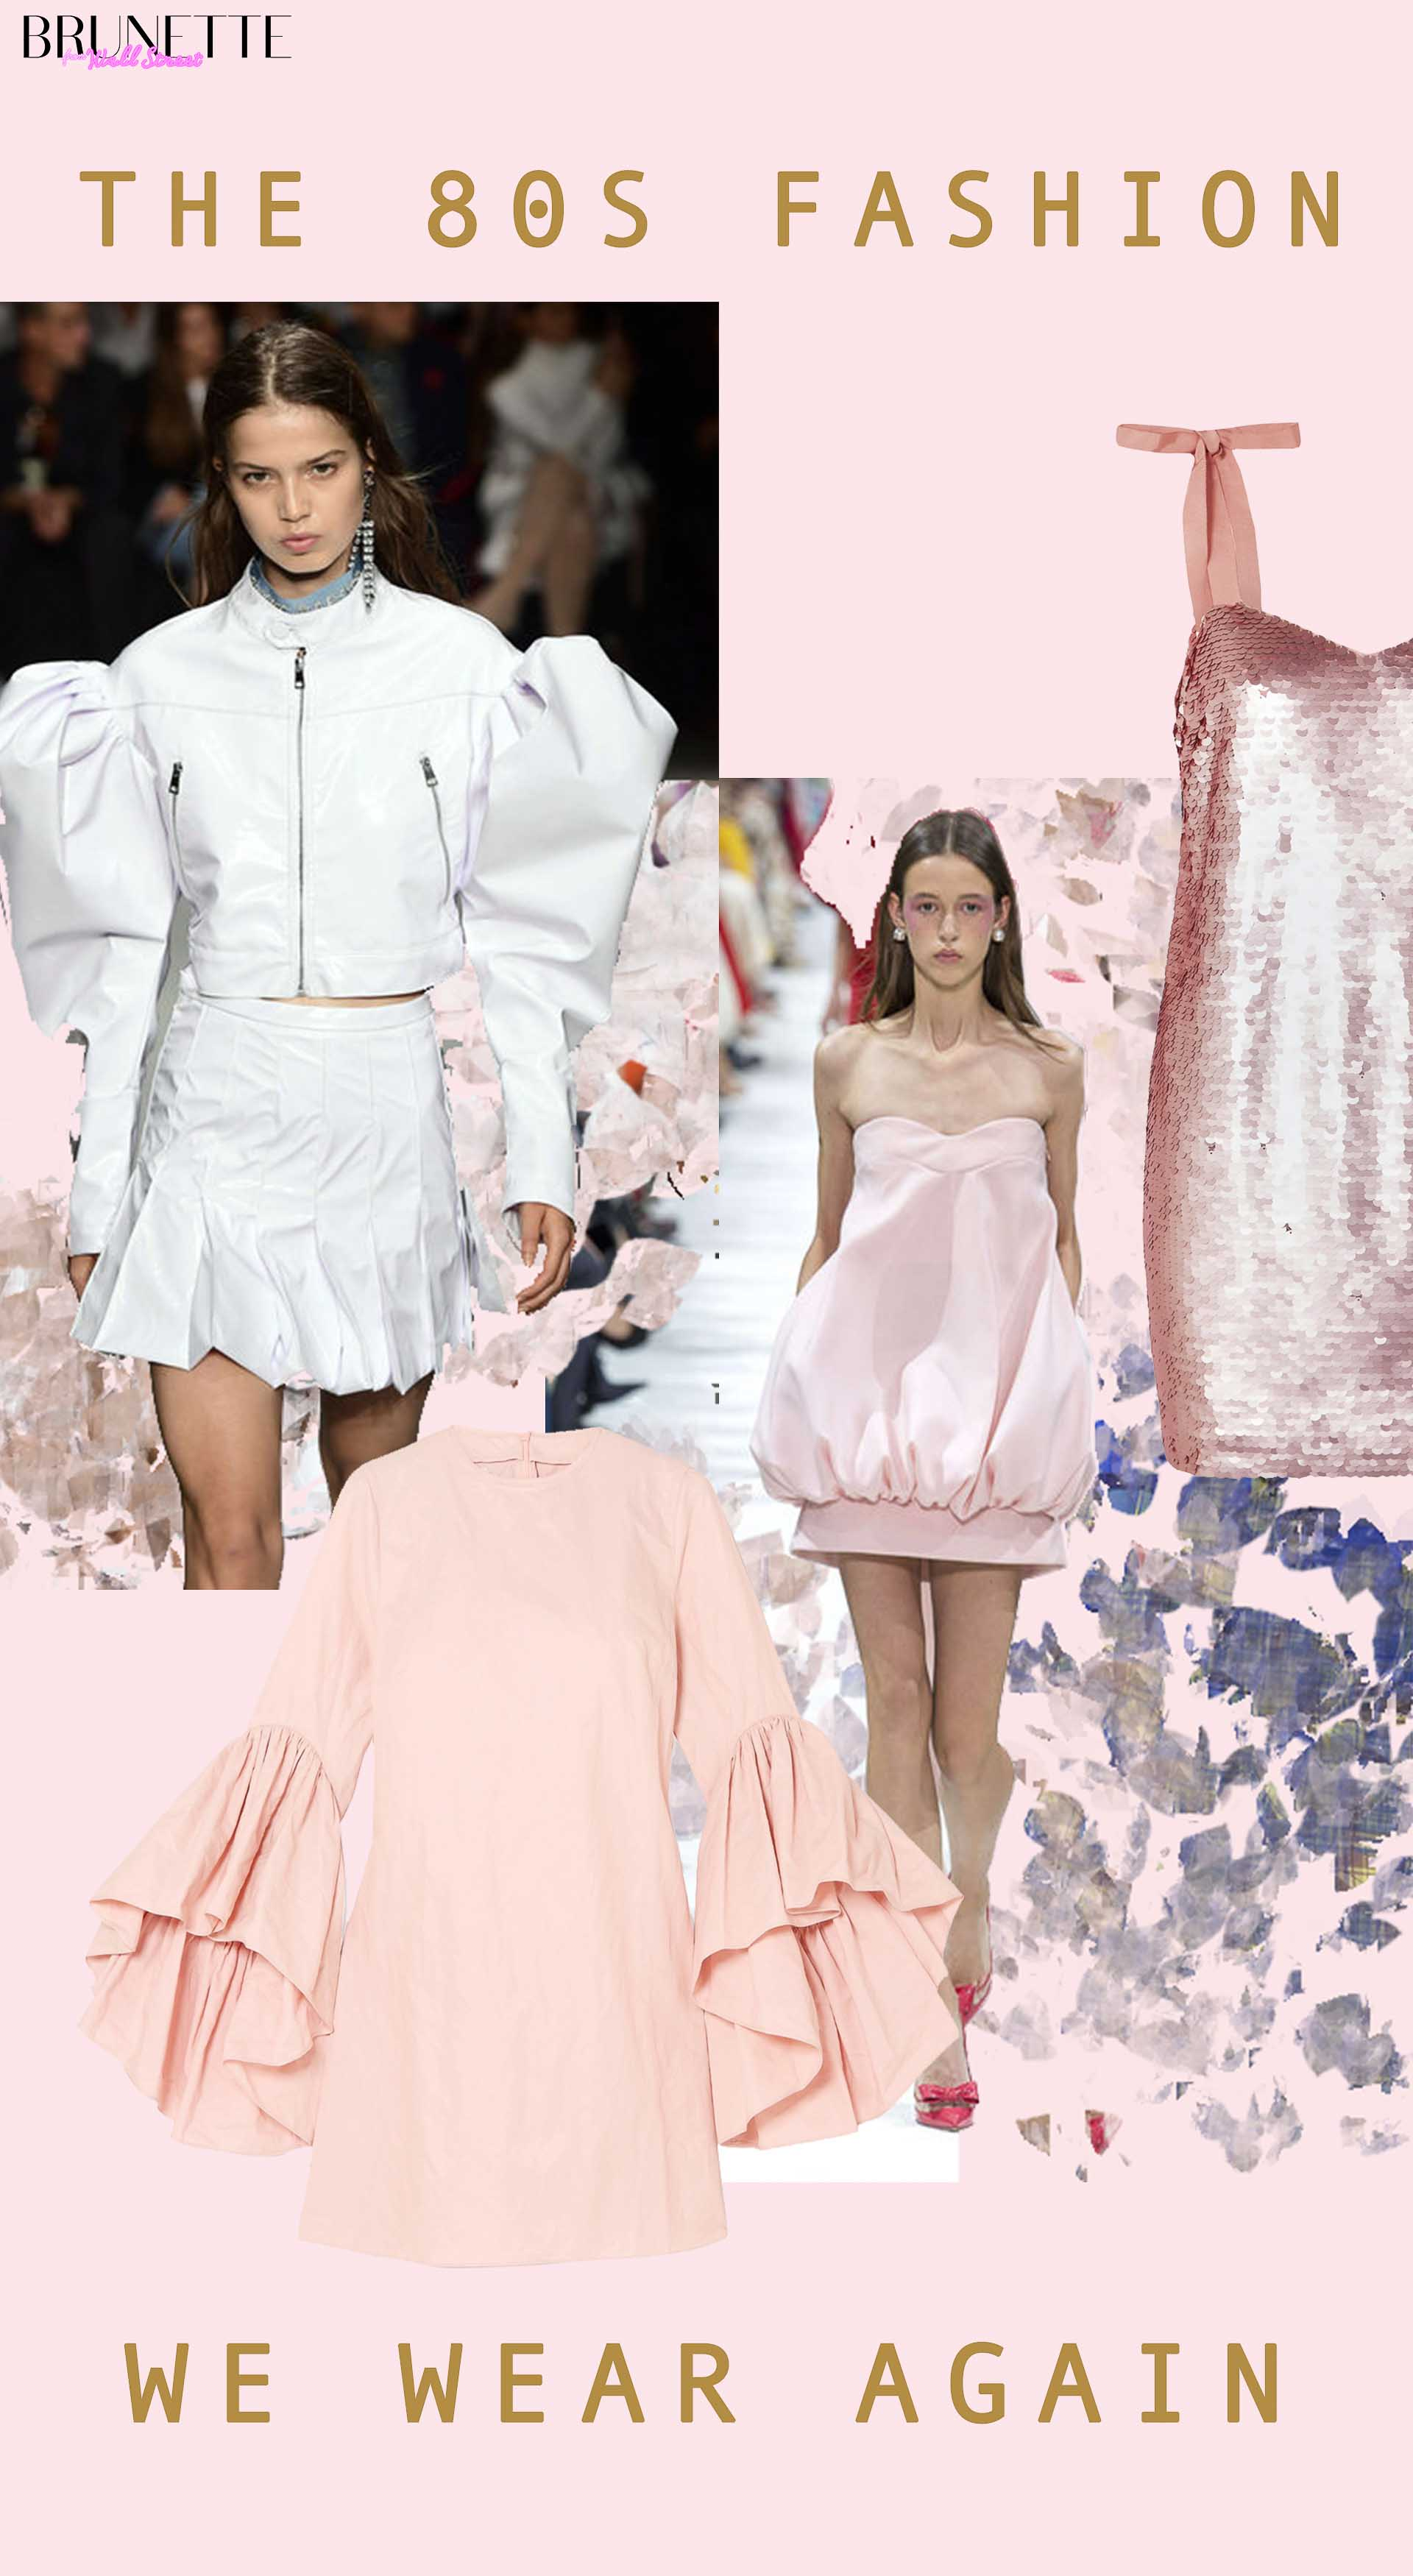 White dress with bold shoulders puffed sleeves, pink dress, glittery dress with text overlay the 80s fashion we wear again